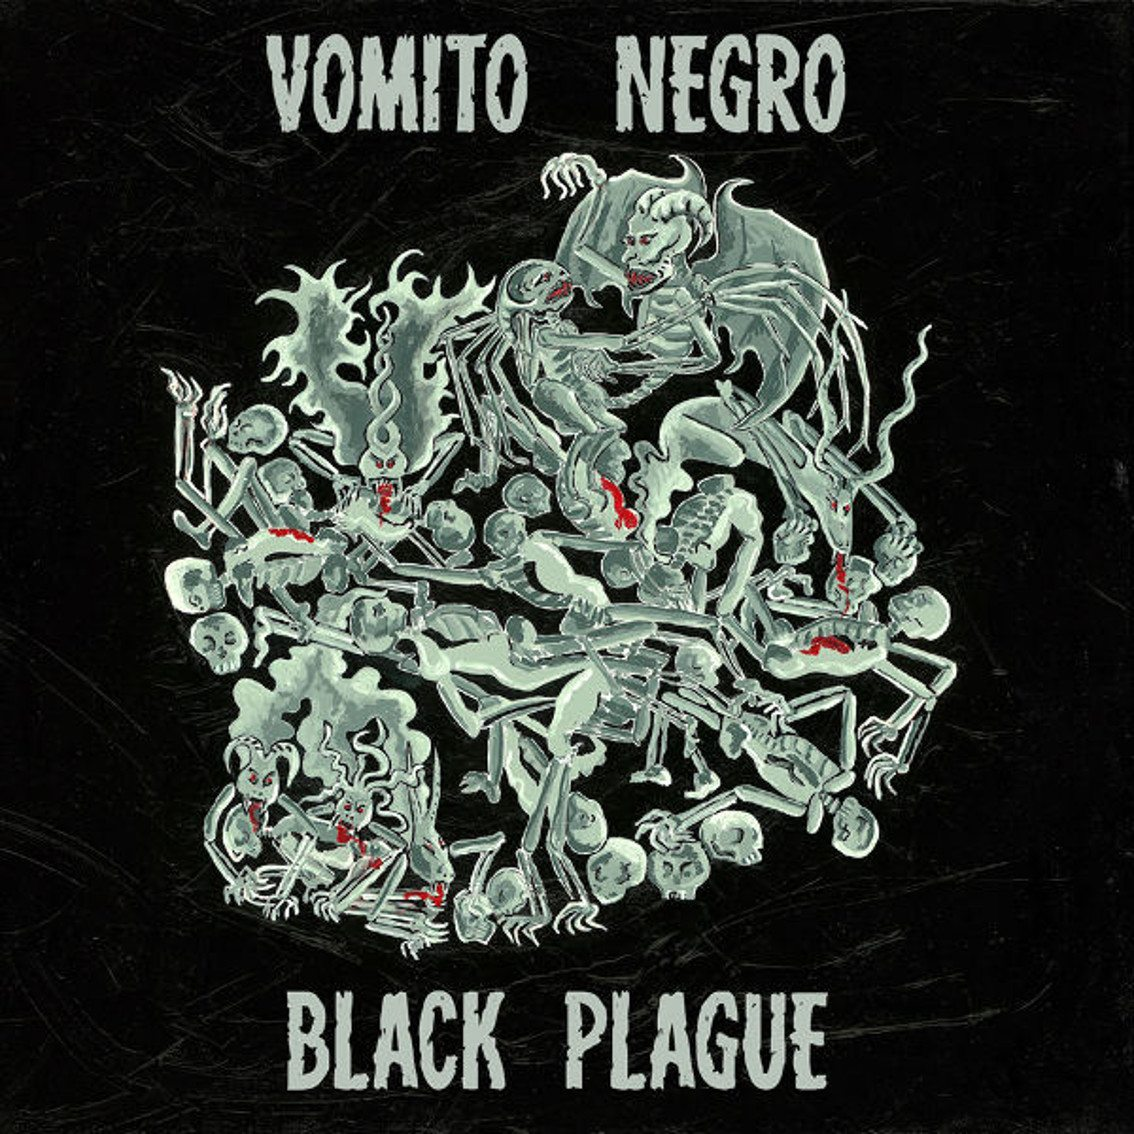 Vomito Negro to launch'Black Plague' album, a year later than originally planned